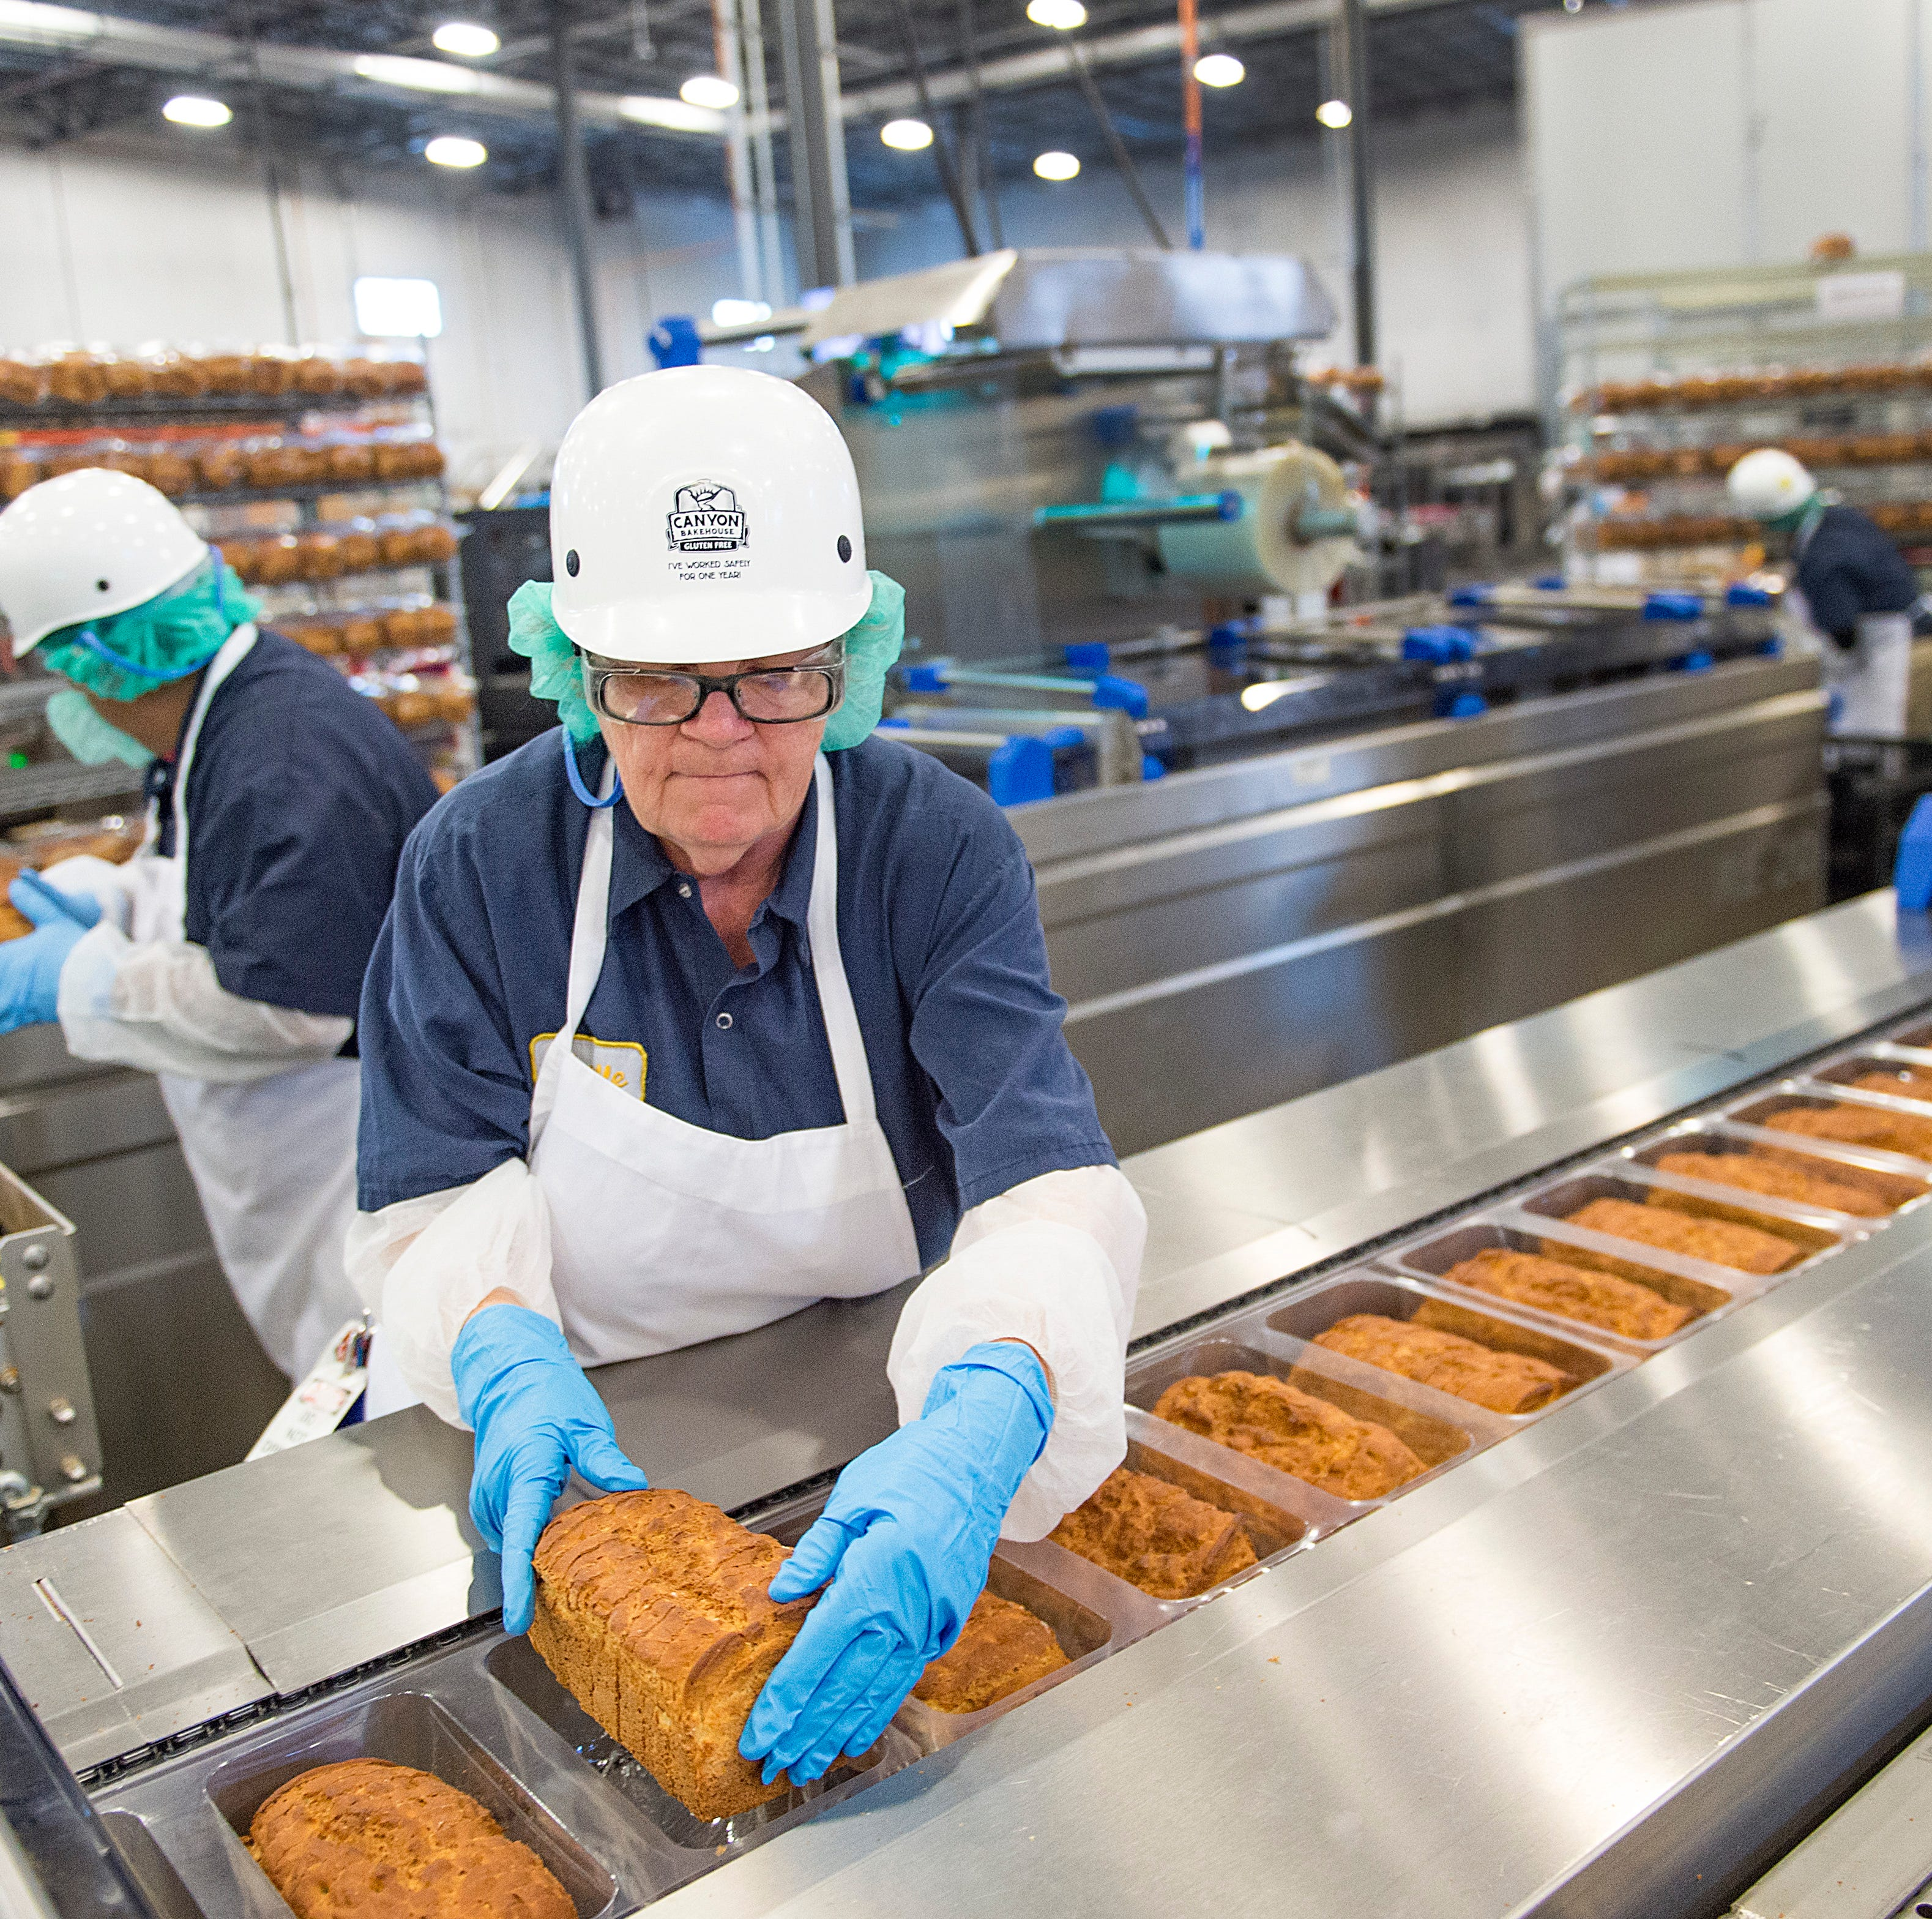 How a Loveland couple's side business became one of the most popular gluten-free bread brands